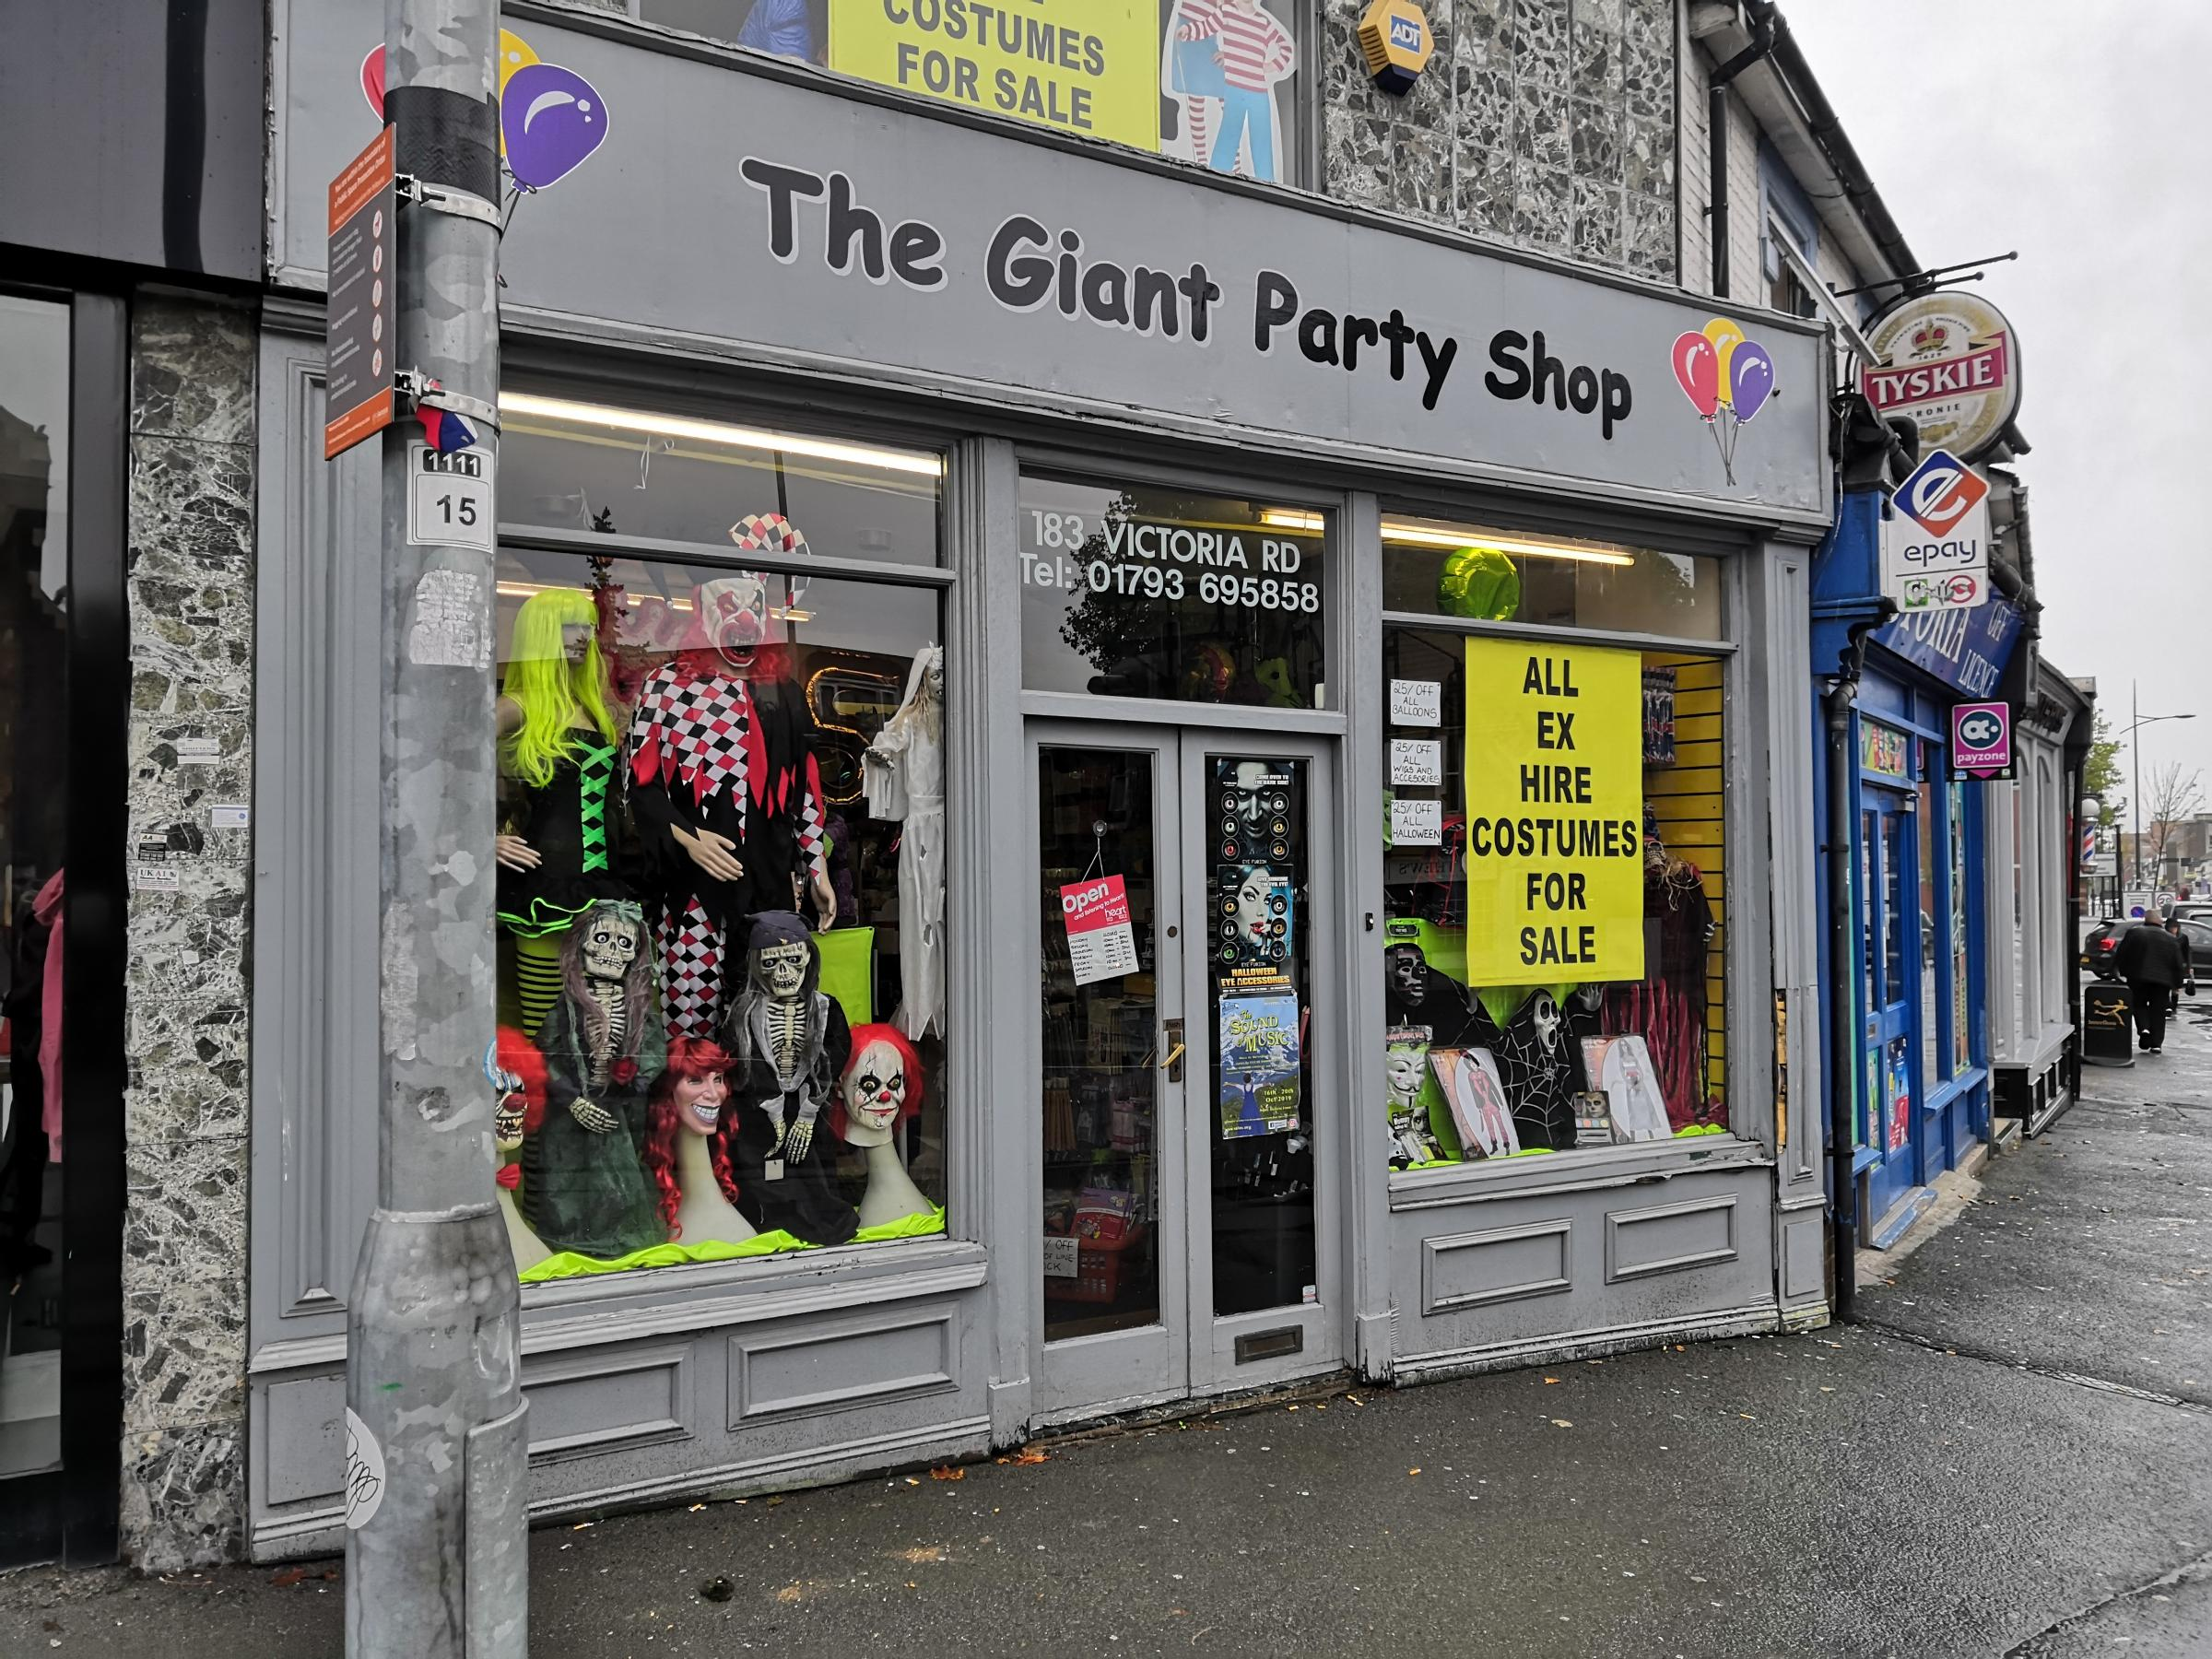 Giant Party Shop to close doors after 20 years in Swindon